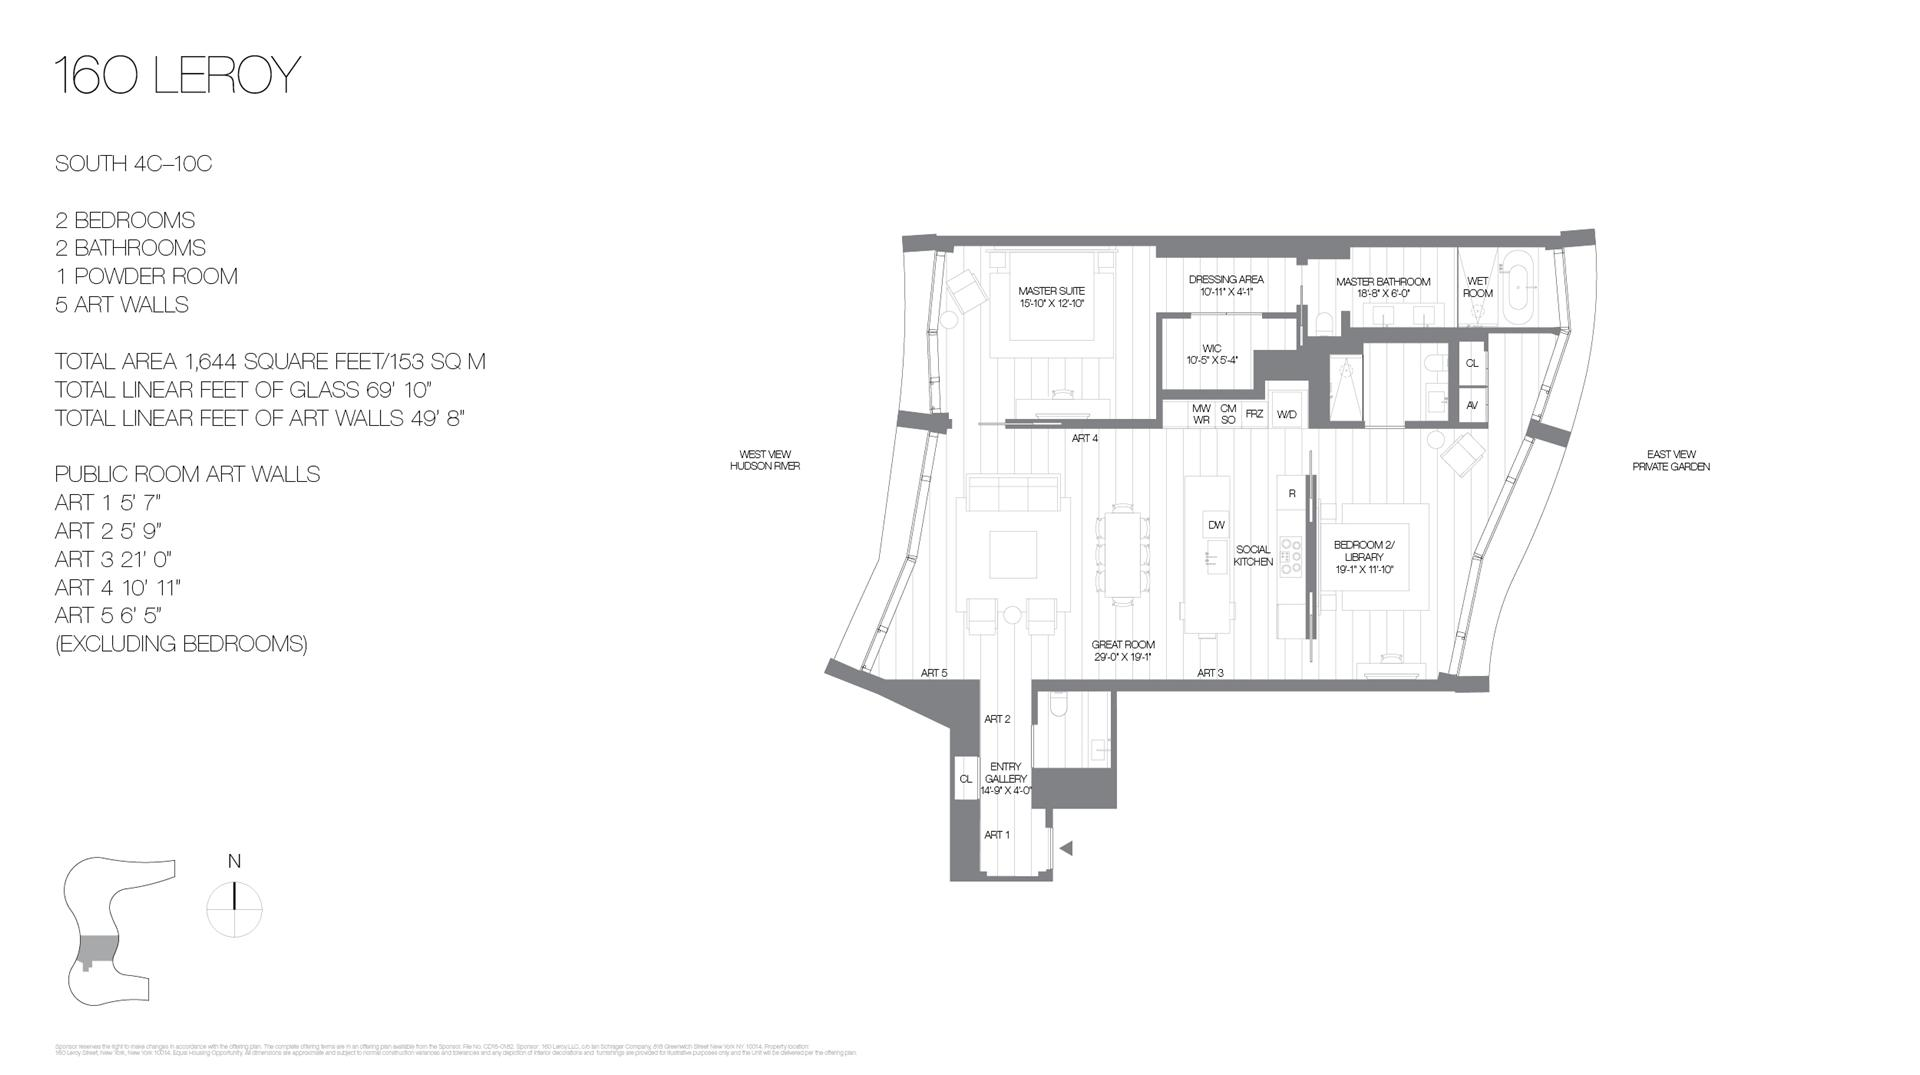 Floor plan of 160 Leroy St, SOUTH5C - West Village - Meatpacking District, New York